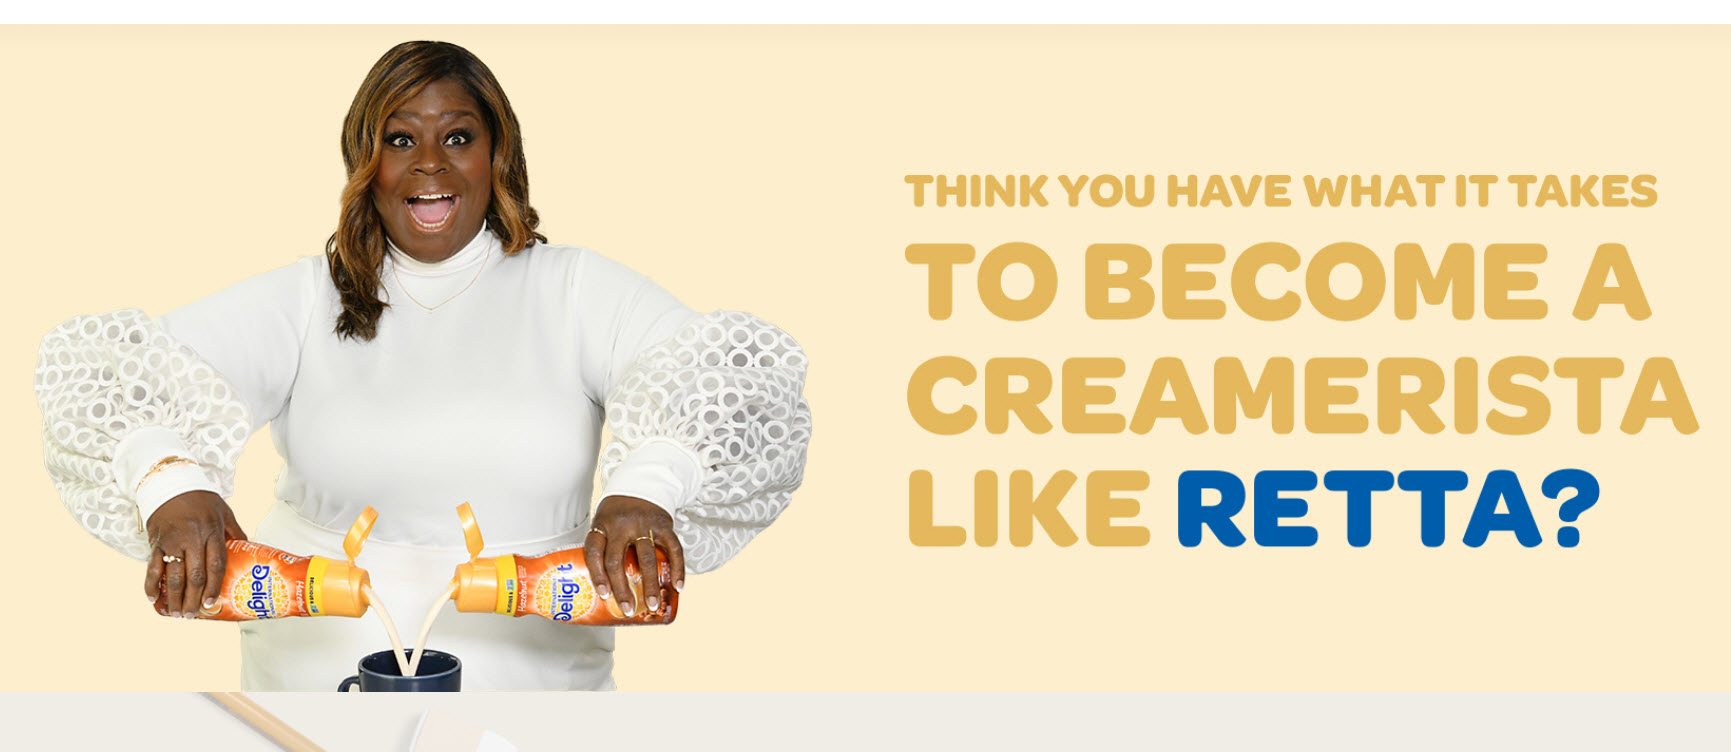 One lucky person will be crowned a CREAMERISTA and win 1,013bottles of International Delight creamer, allowing them to try endless flavor combinations! Prize delivered in two shipments of free coupons.